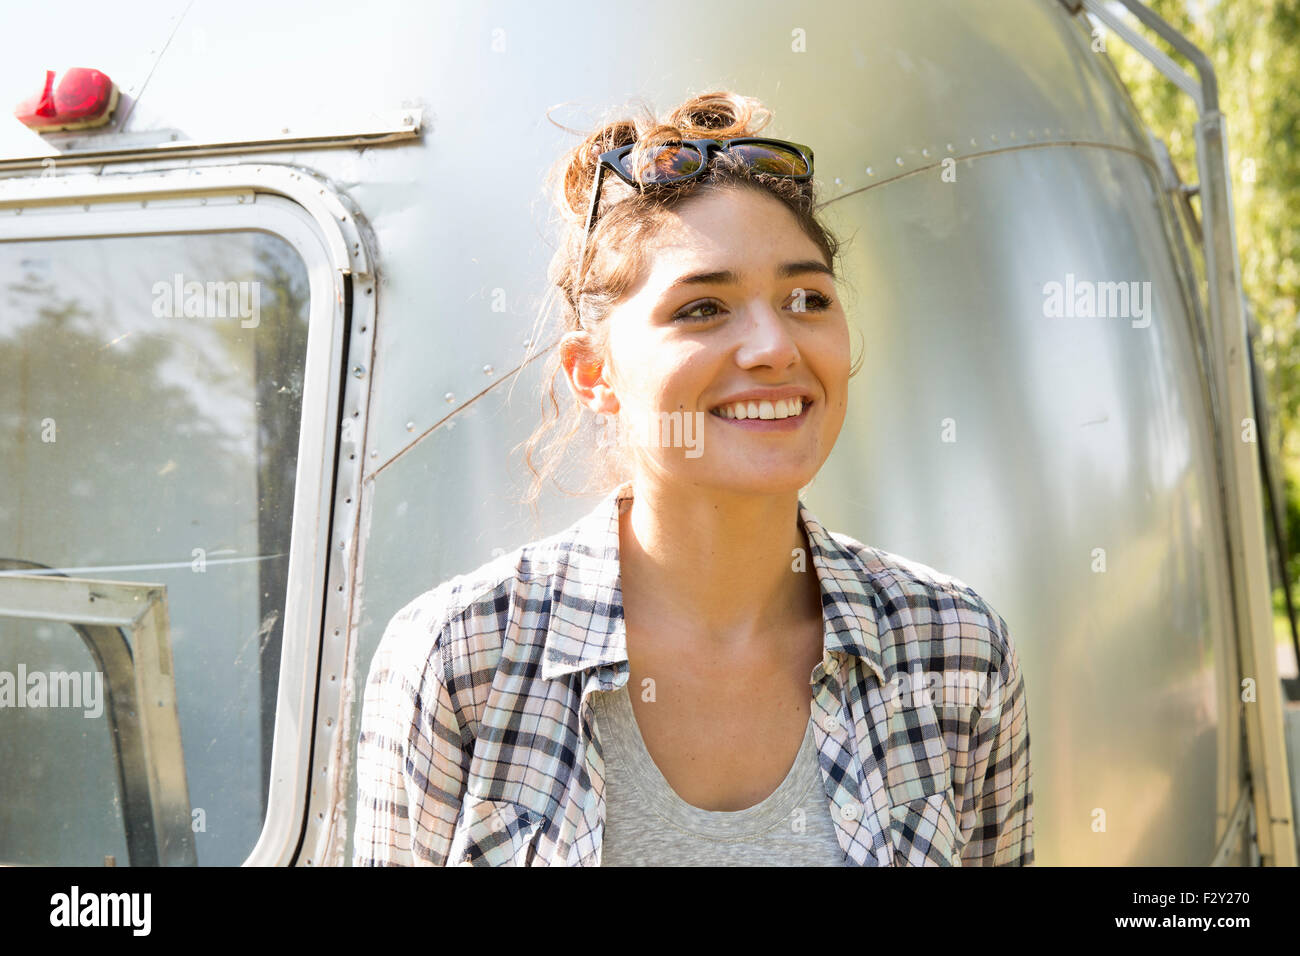 A young woman wearing sunglasses by a silver coloured trailer. - Stock Image